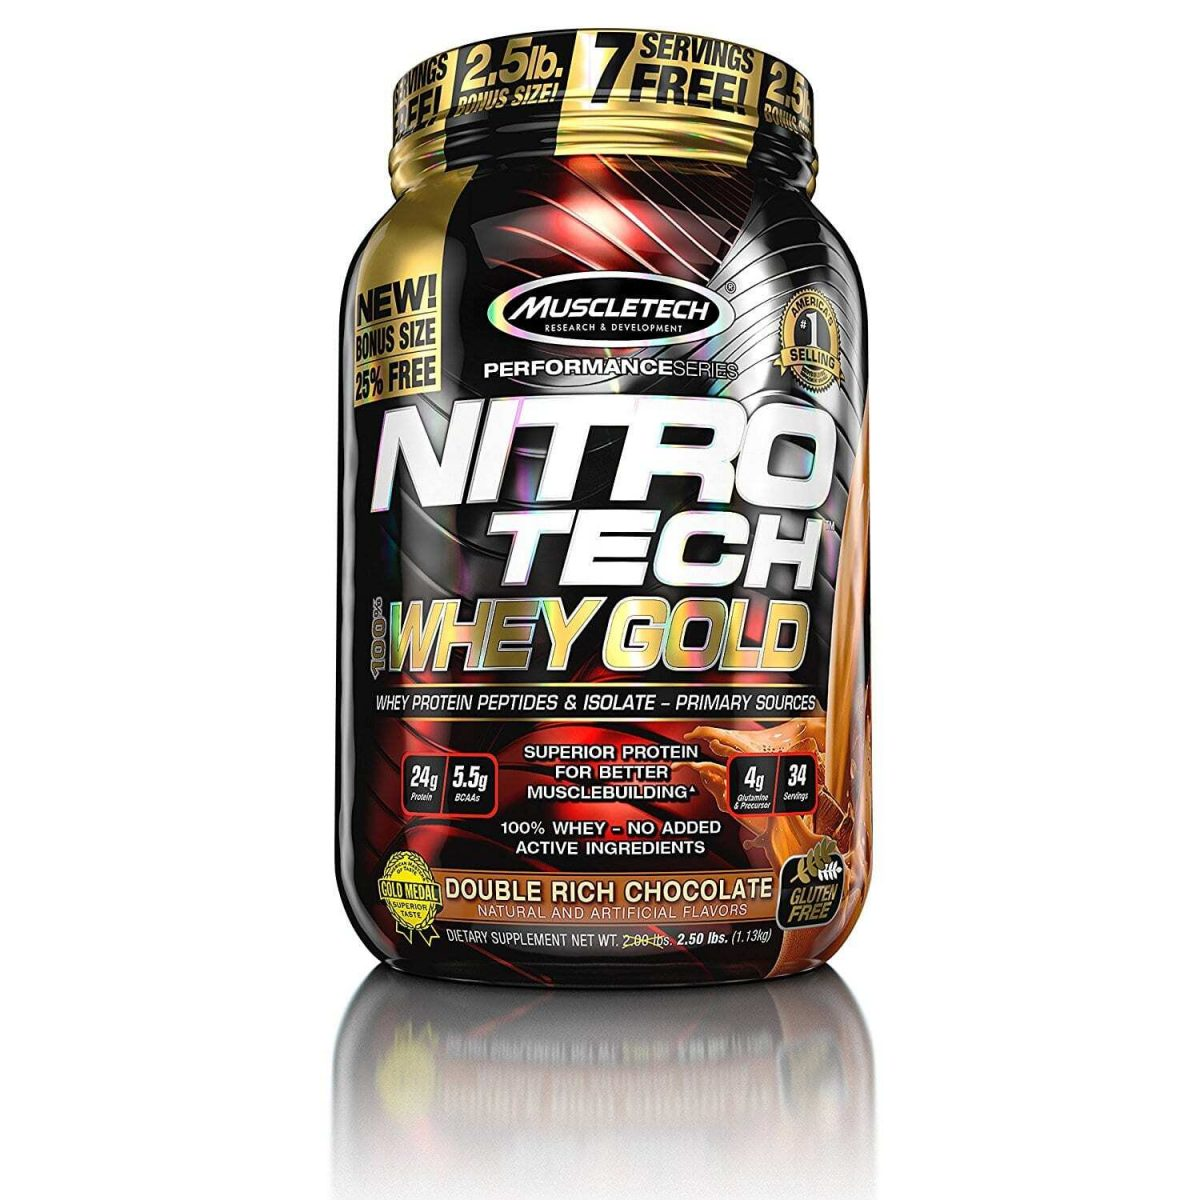 MuscleTech Performance Series Nitro-Tech 100% Whey Gold - Double Rich Chocolate - 35 Servings